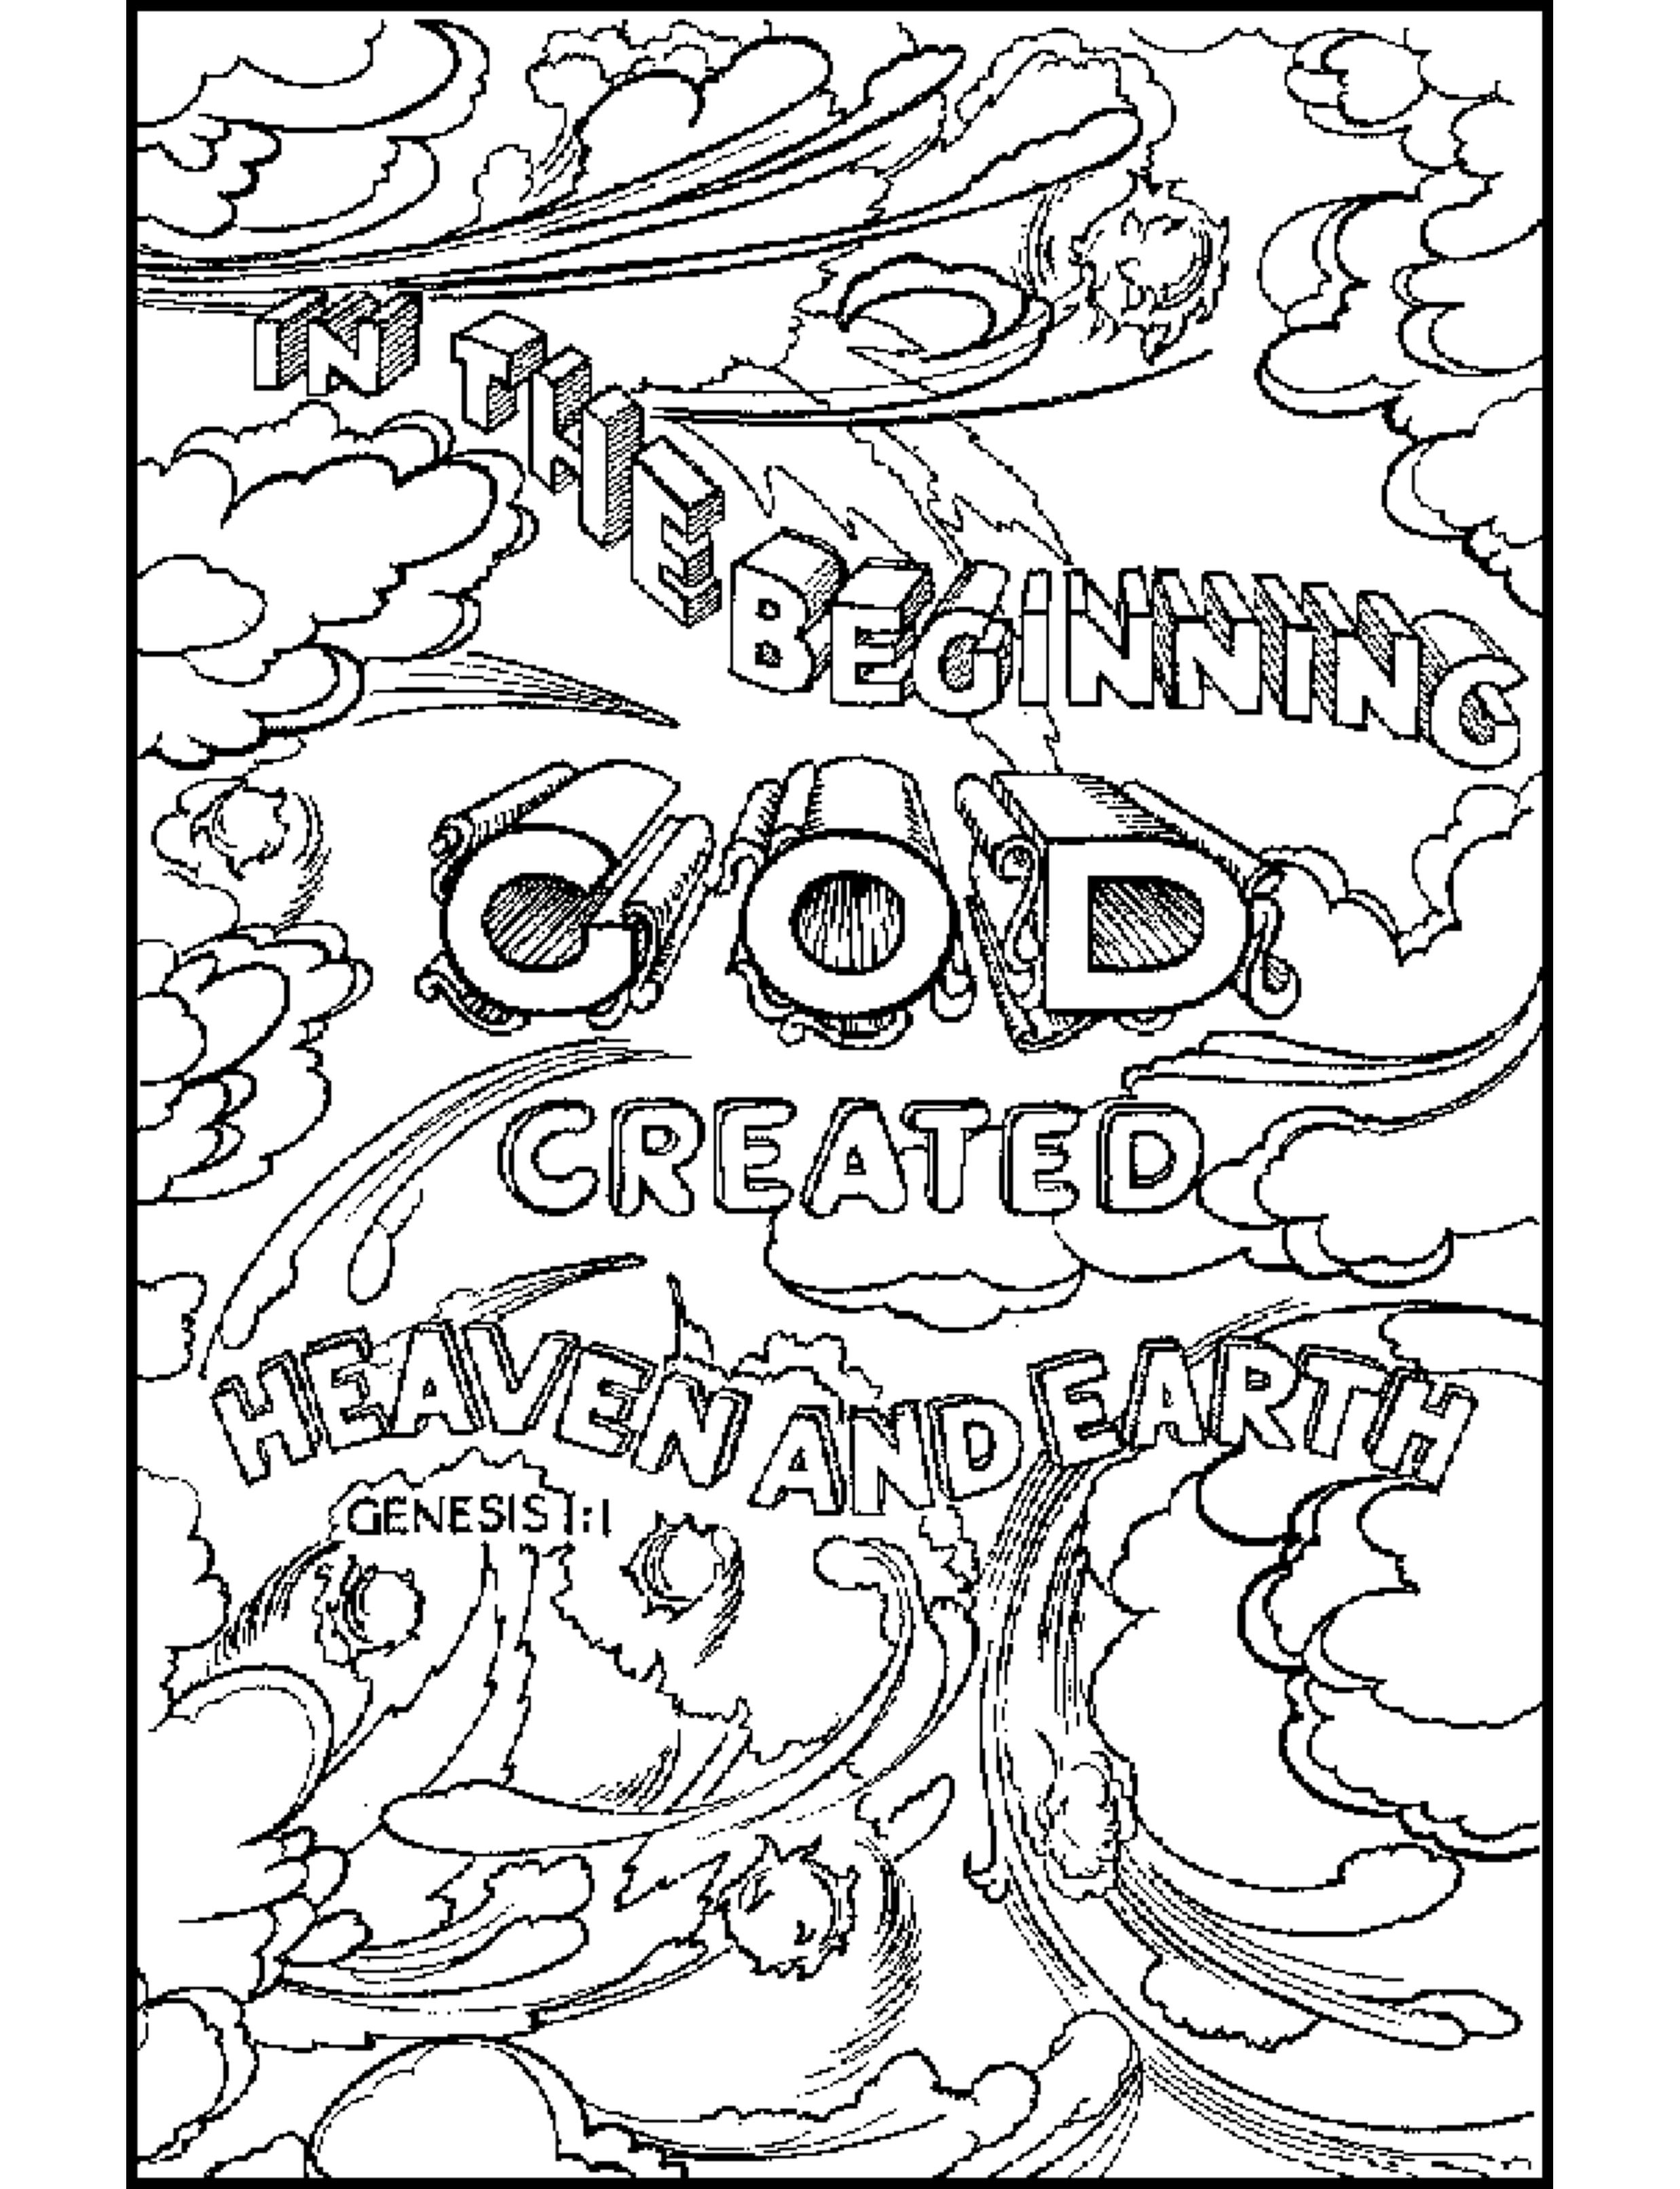 scripture coloring pages - abda acts art publishing coloring pages